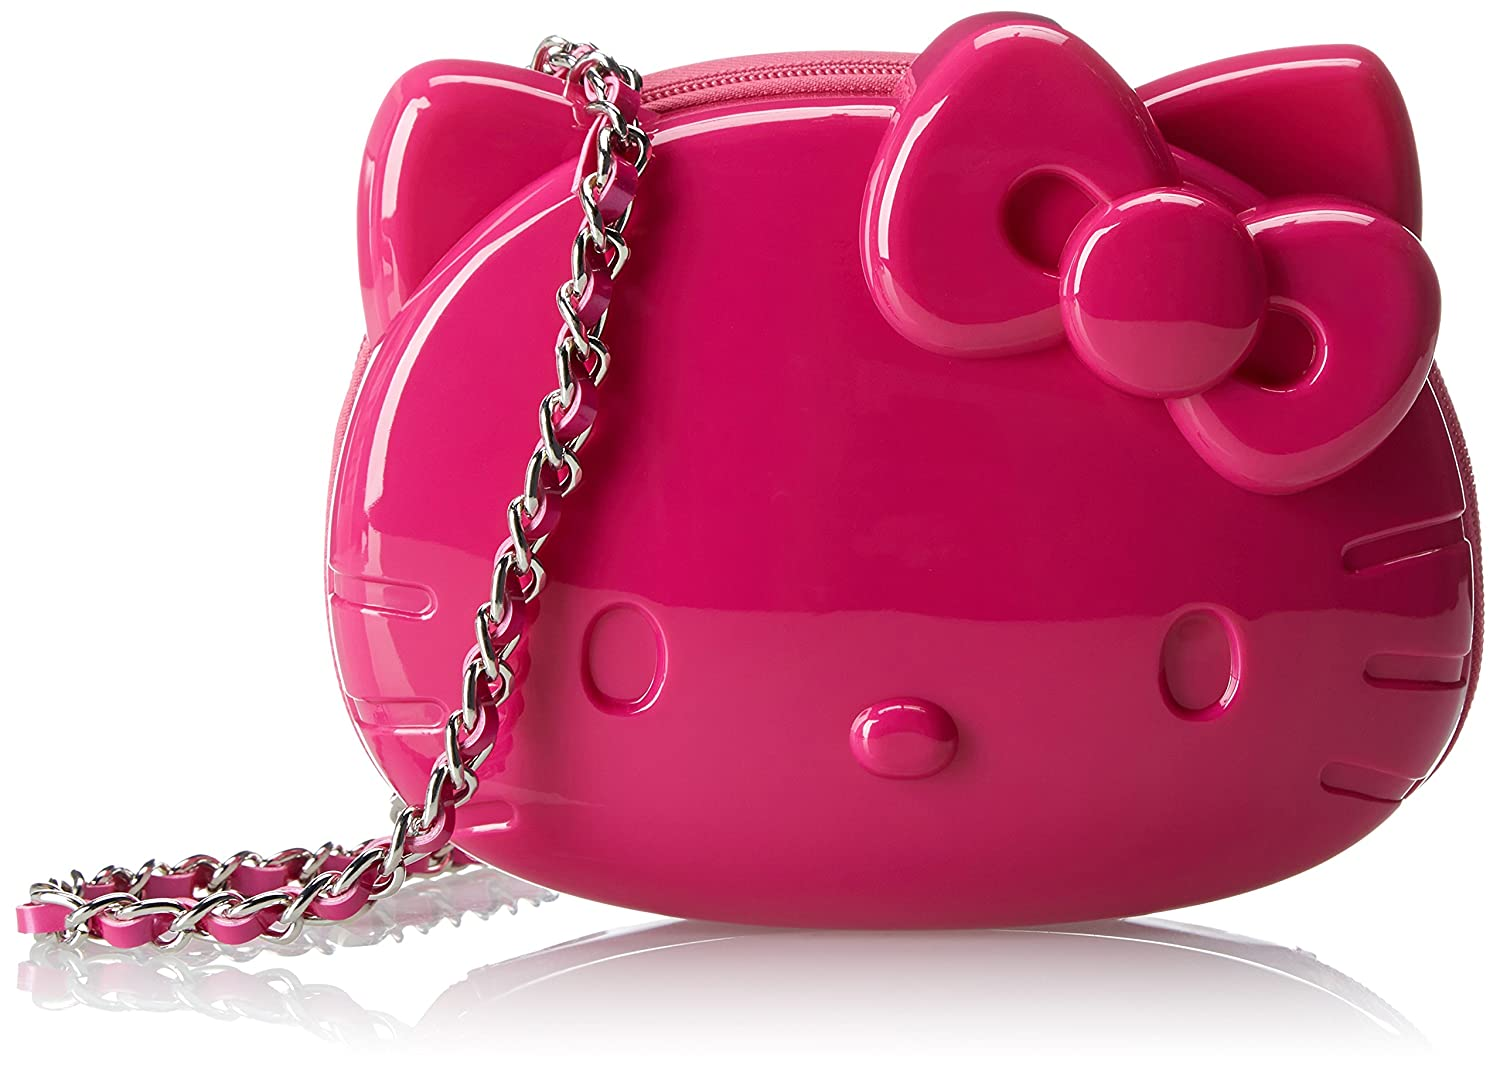 ef5c8ead2e Loungefly Hello Kitty 3D Moulded Silicon Chain Cross Body Bag (Pink)  Amazon.co.uk   Toys   Games